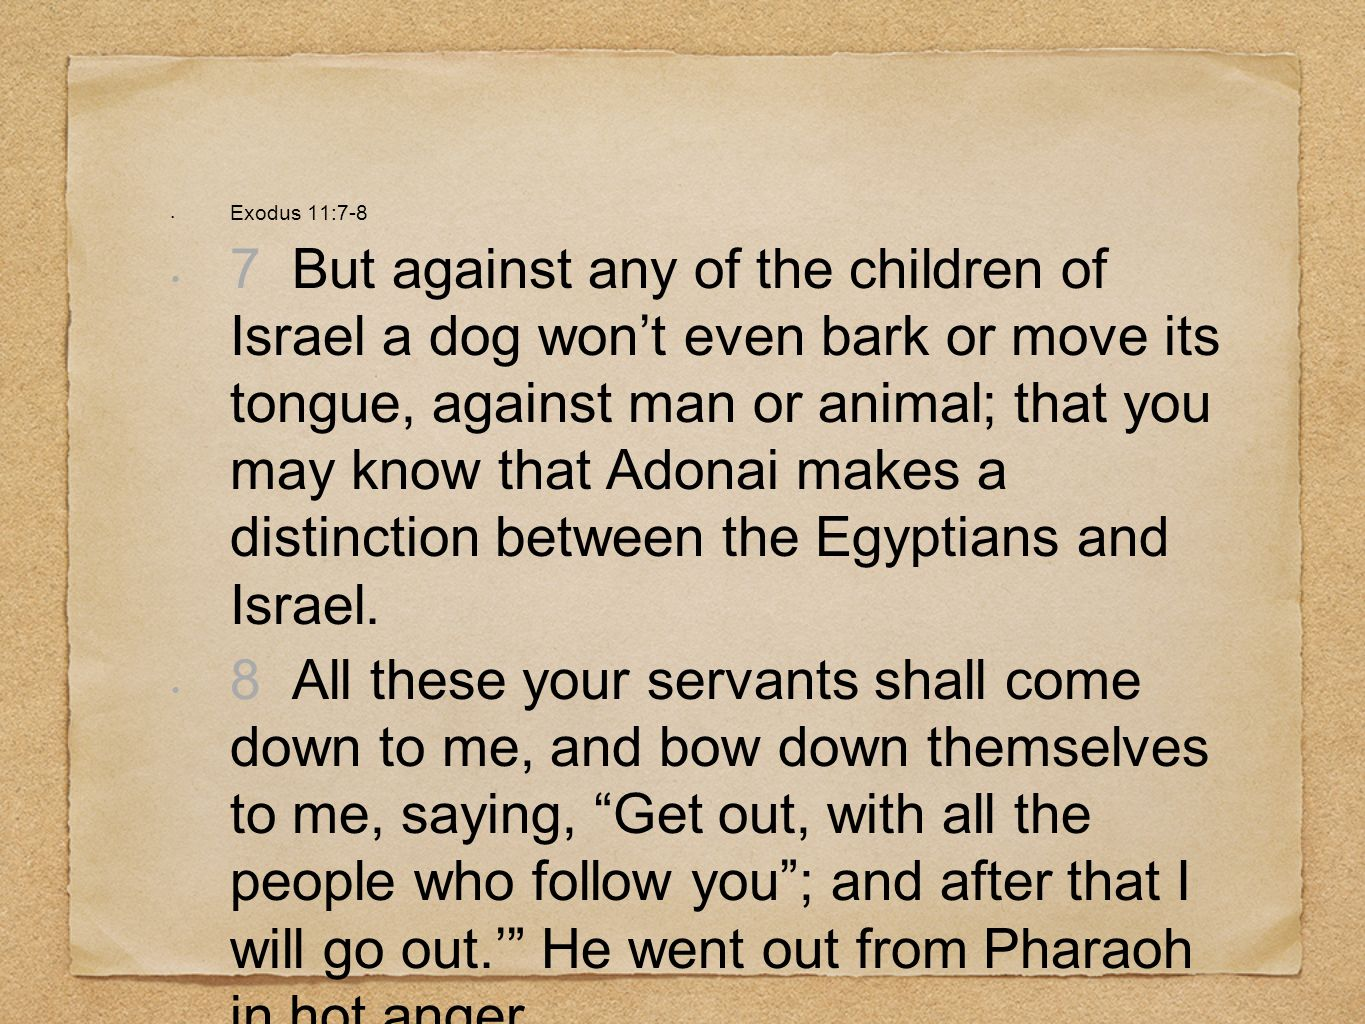 Exodus 11:7-8 7 But against any of the children of Israel a dog wont even bark or move its tongue, against man or animal; that you may know that Adona